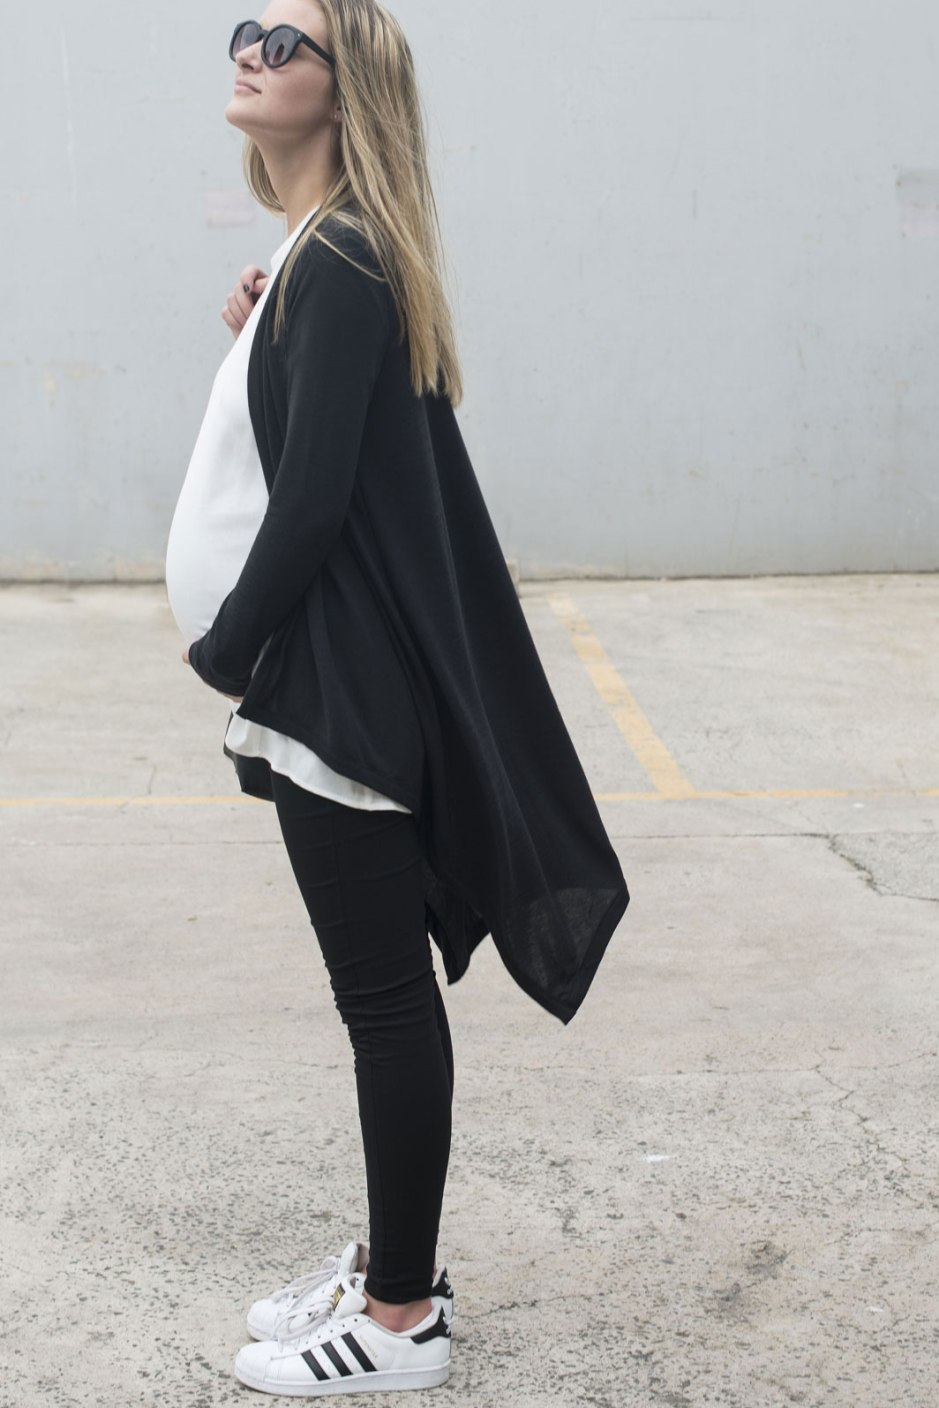 6 stylish maternity looks we love